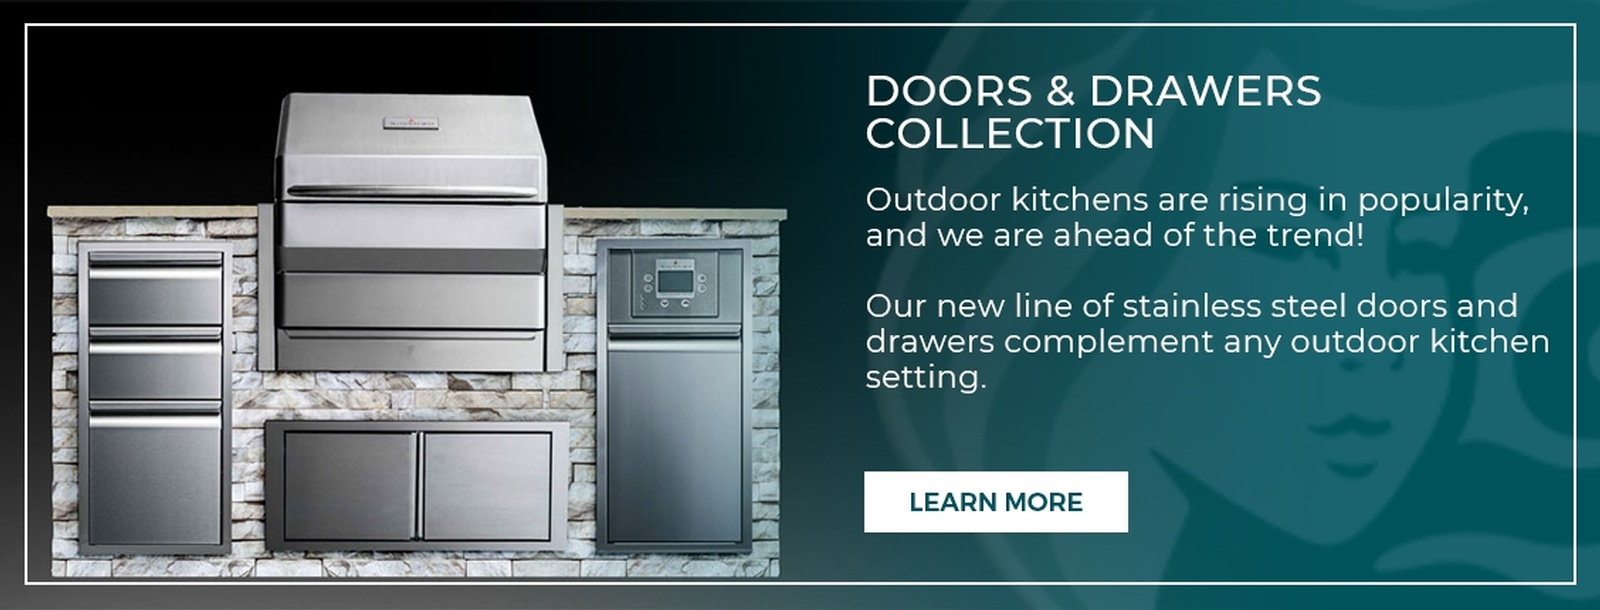 Doors and Drawers Collection at Beachcomber Lloydminster